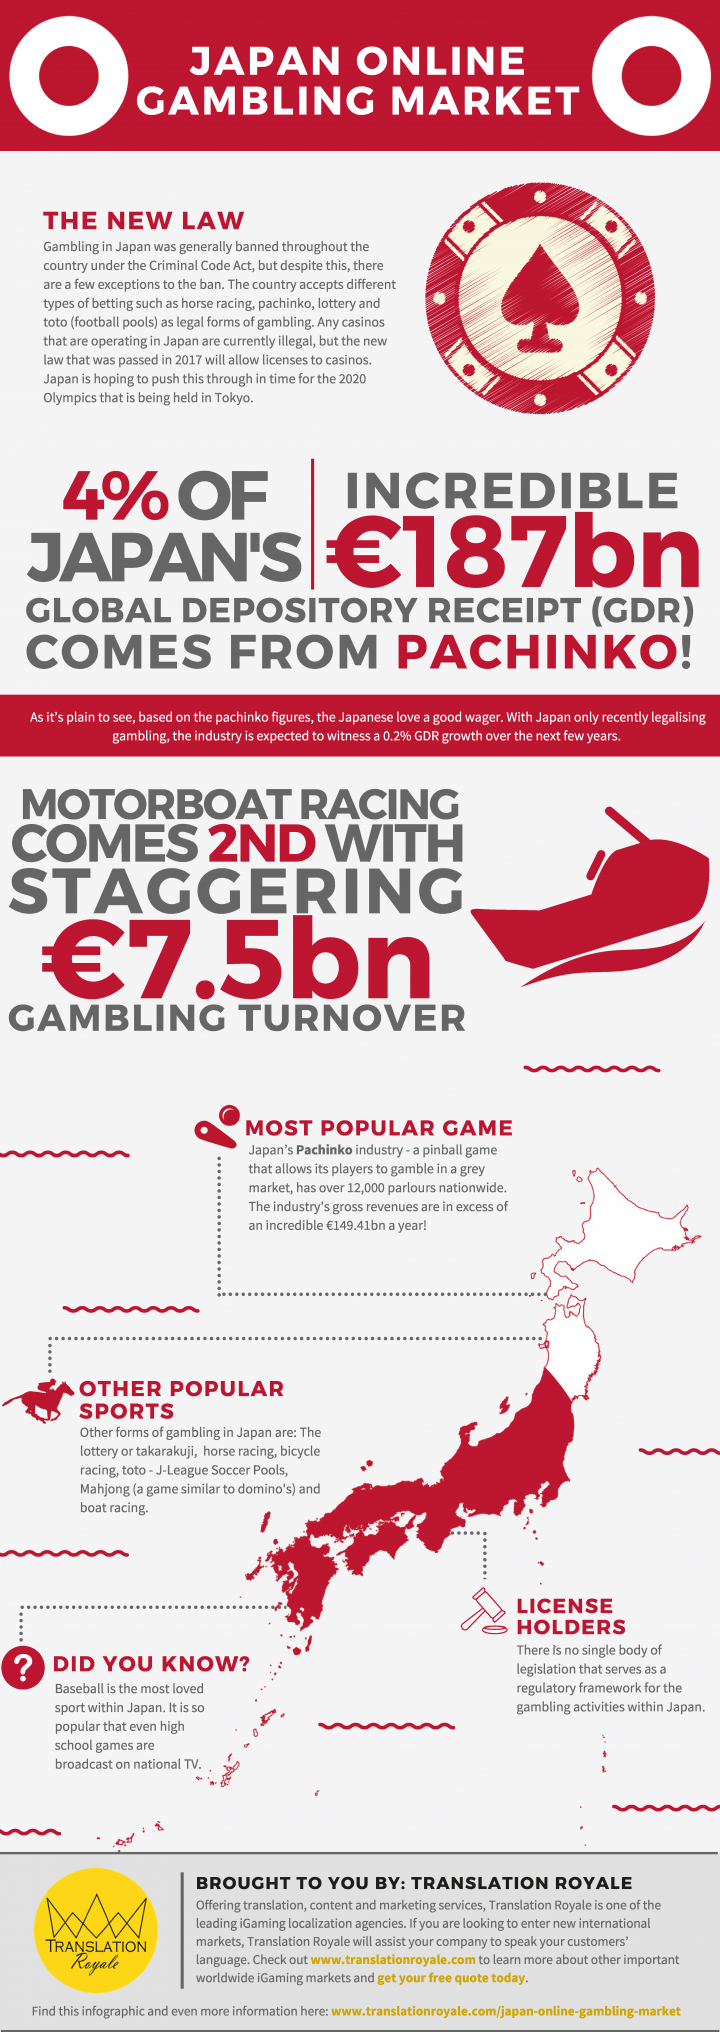 Japan Online Gambling Market Infographic from the iGaming